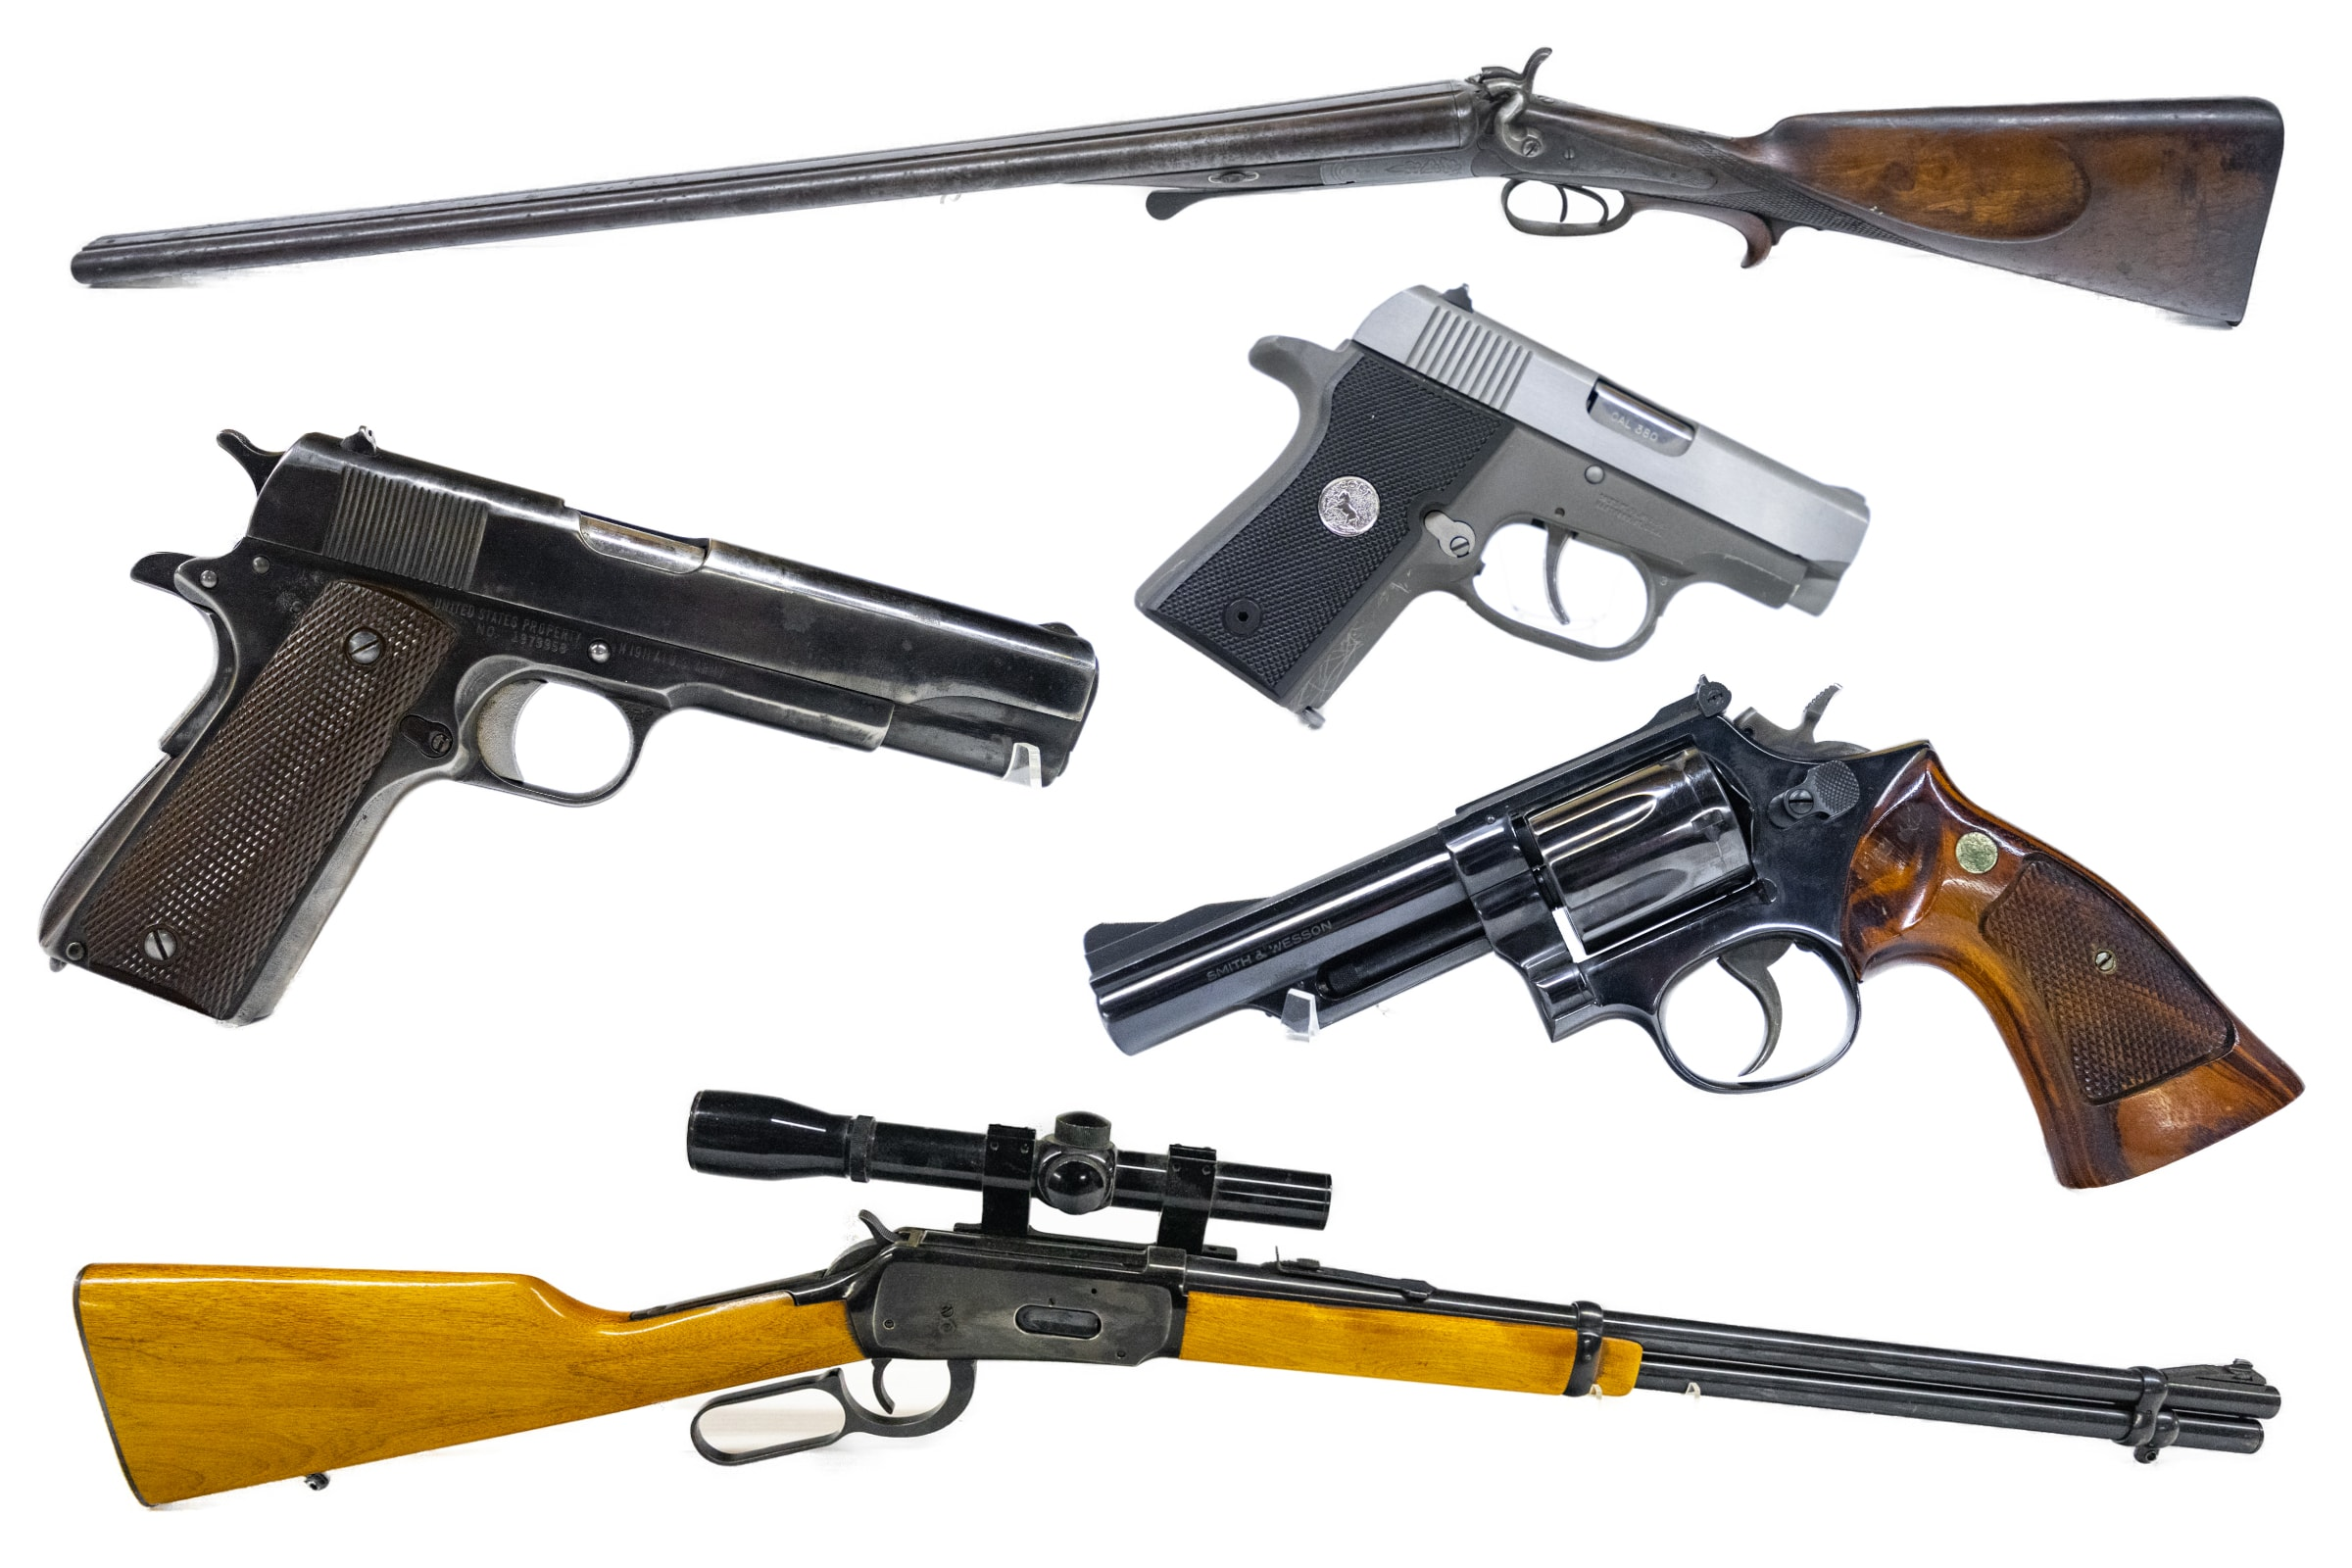 Fosskuhl Firearm Auction